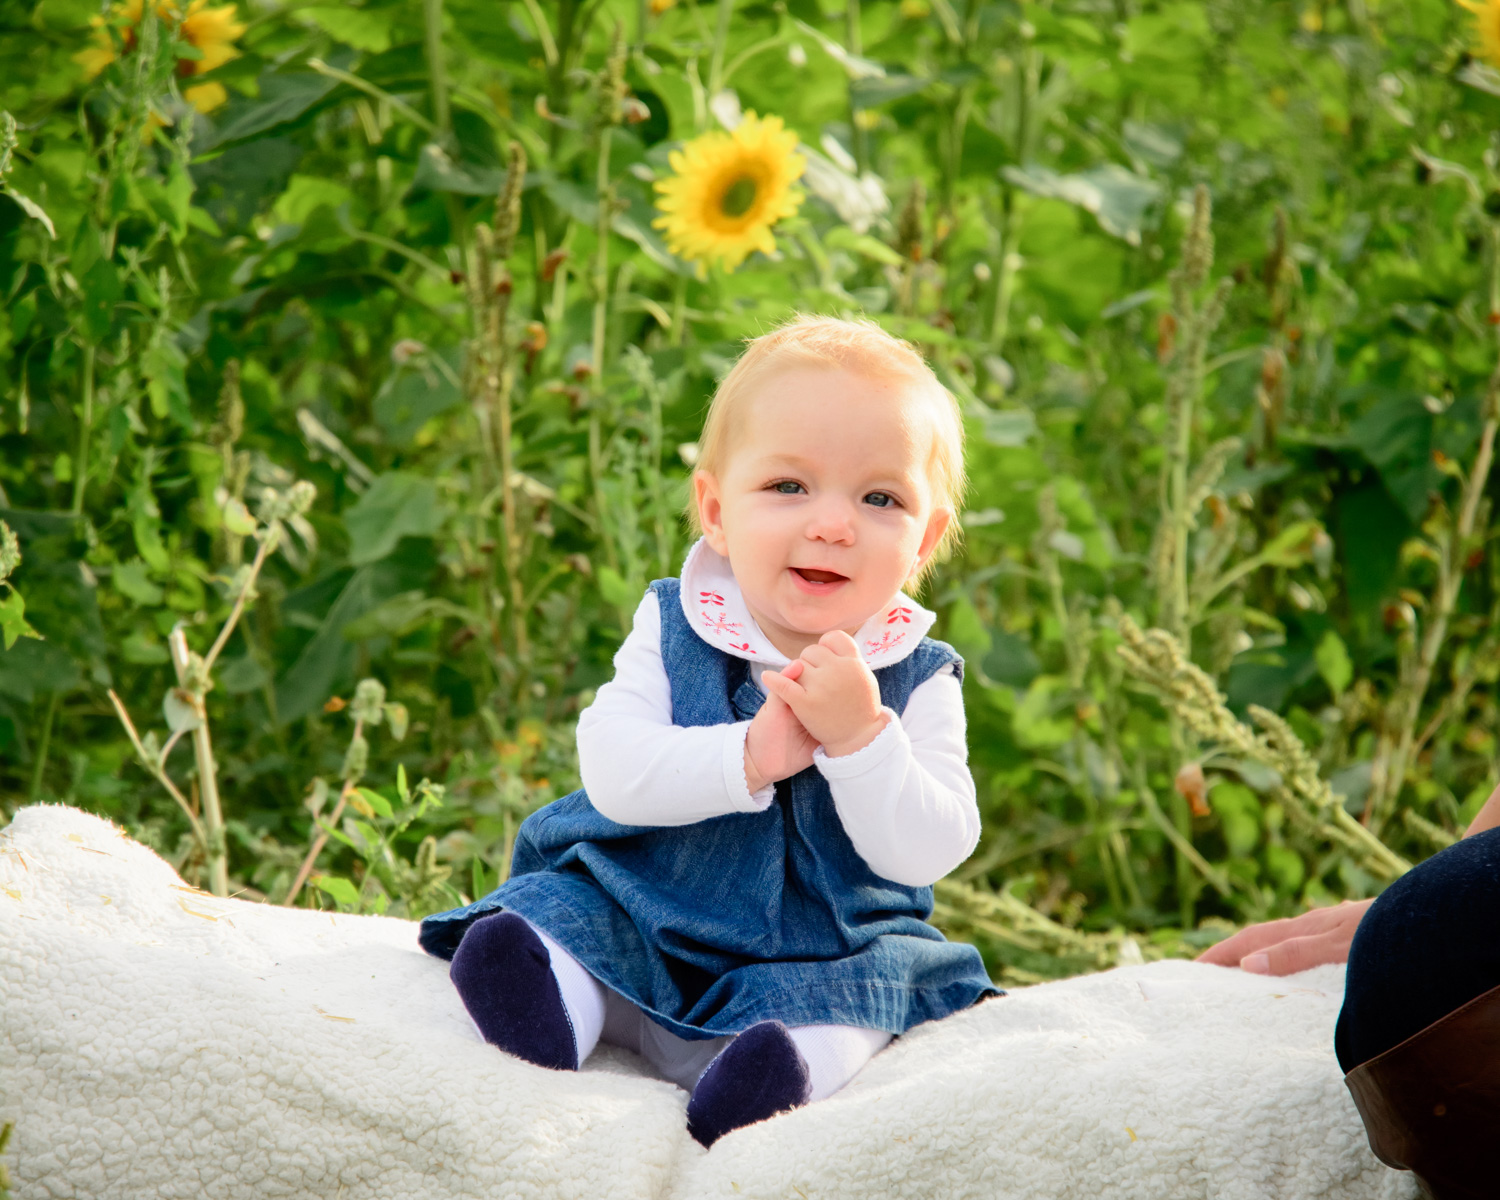 Family photo tips - infants